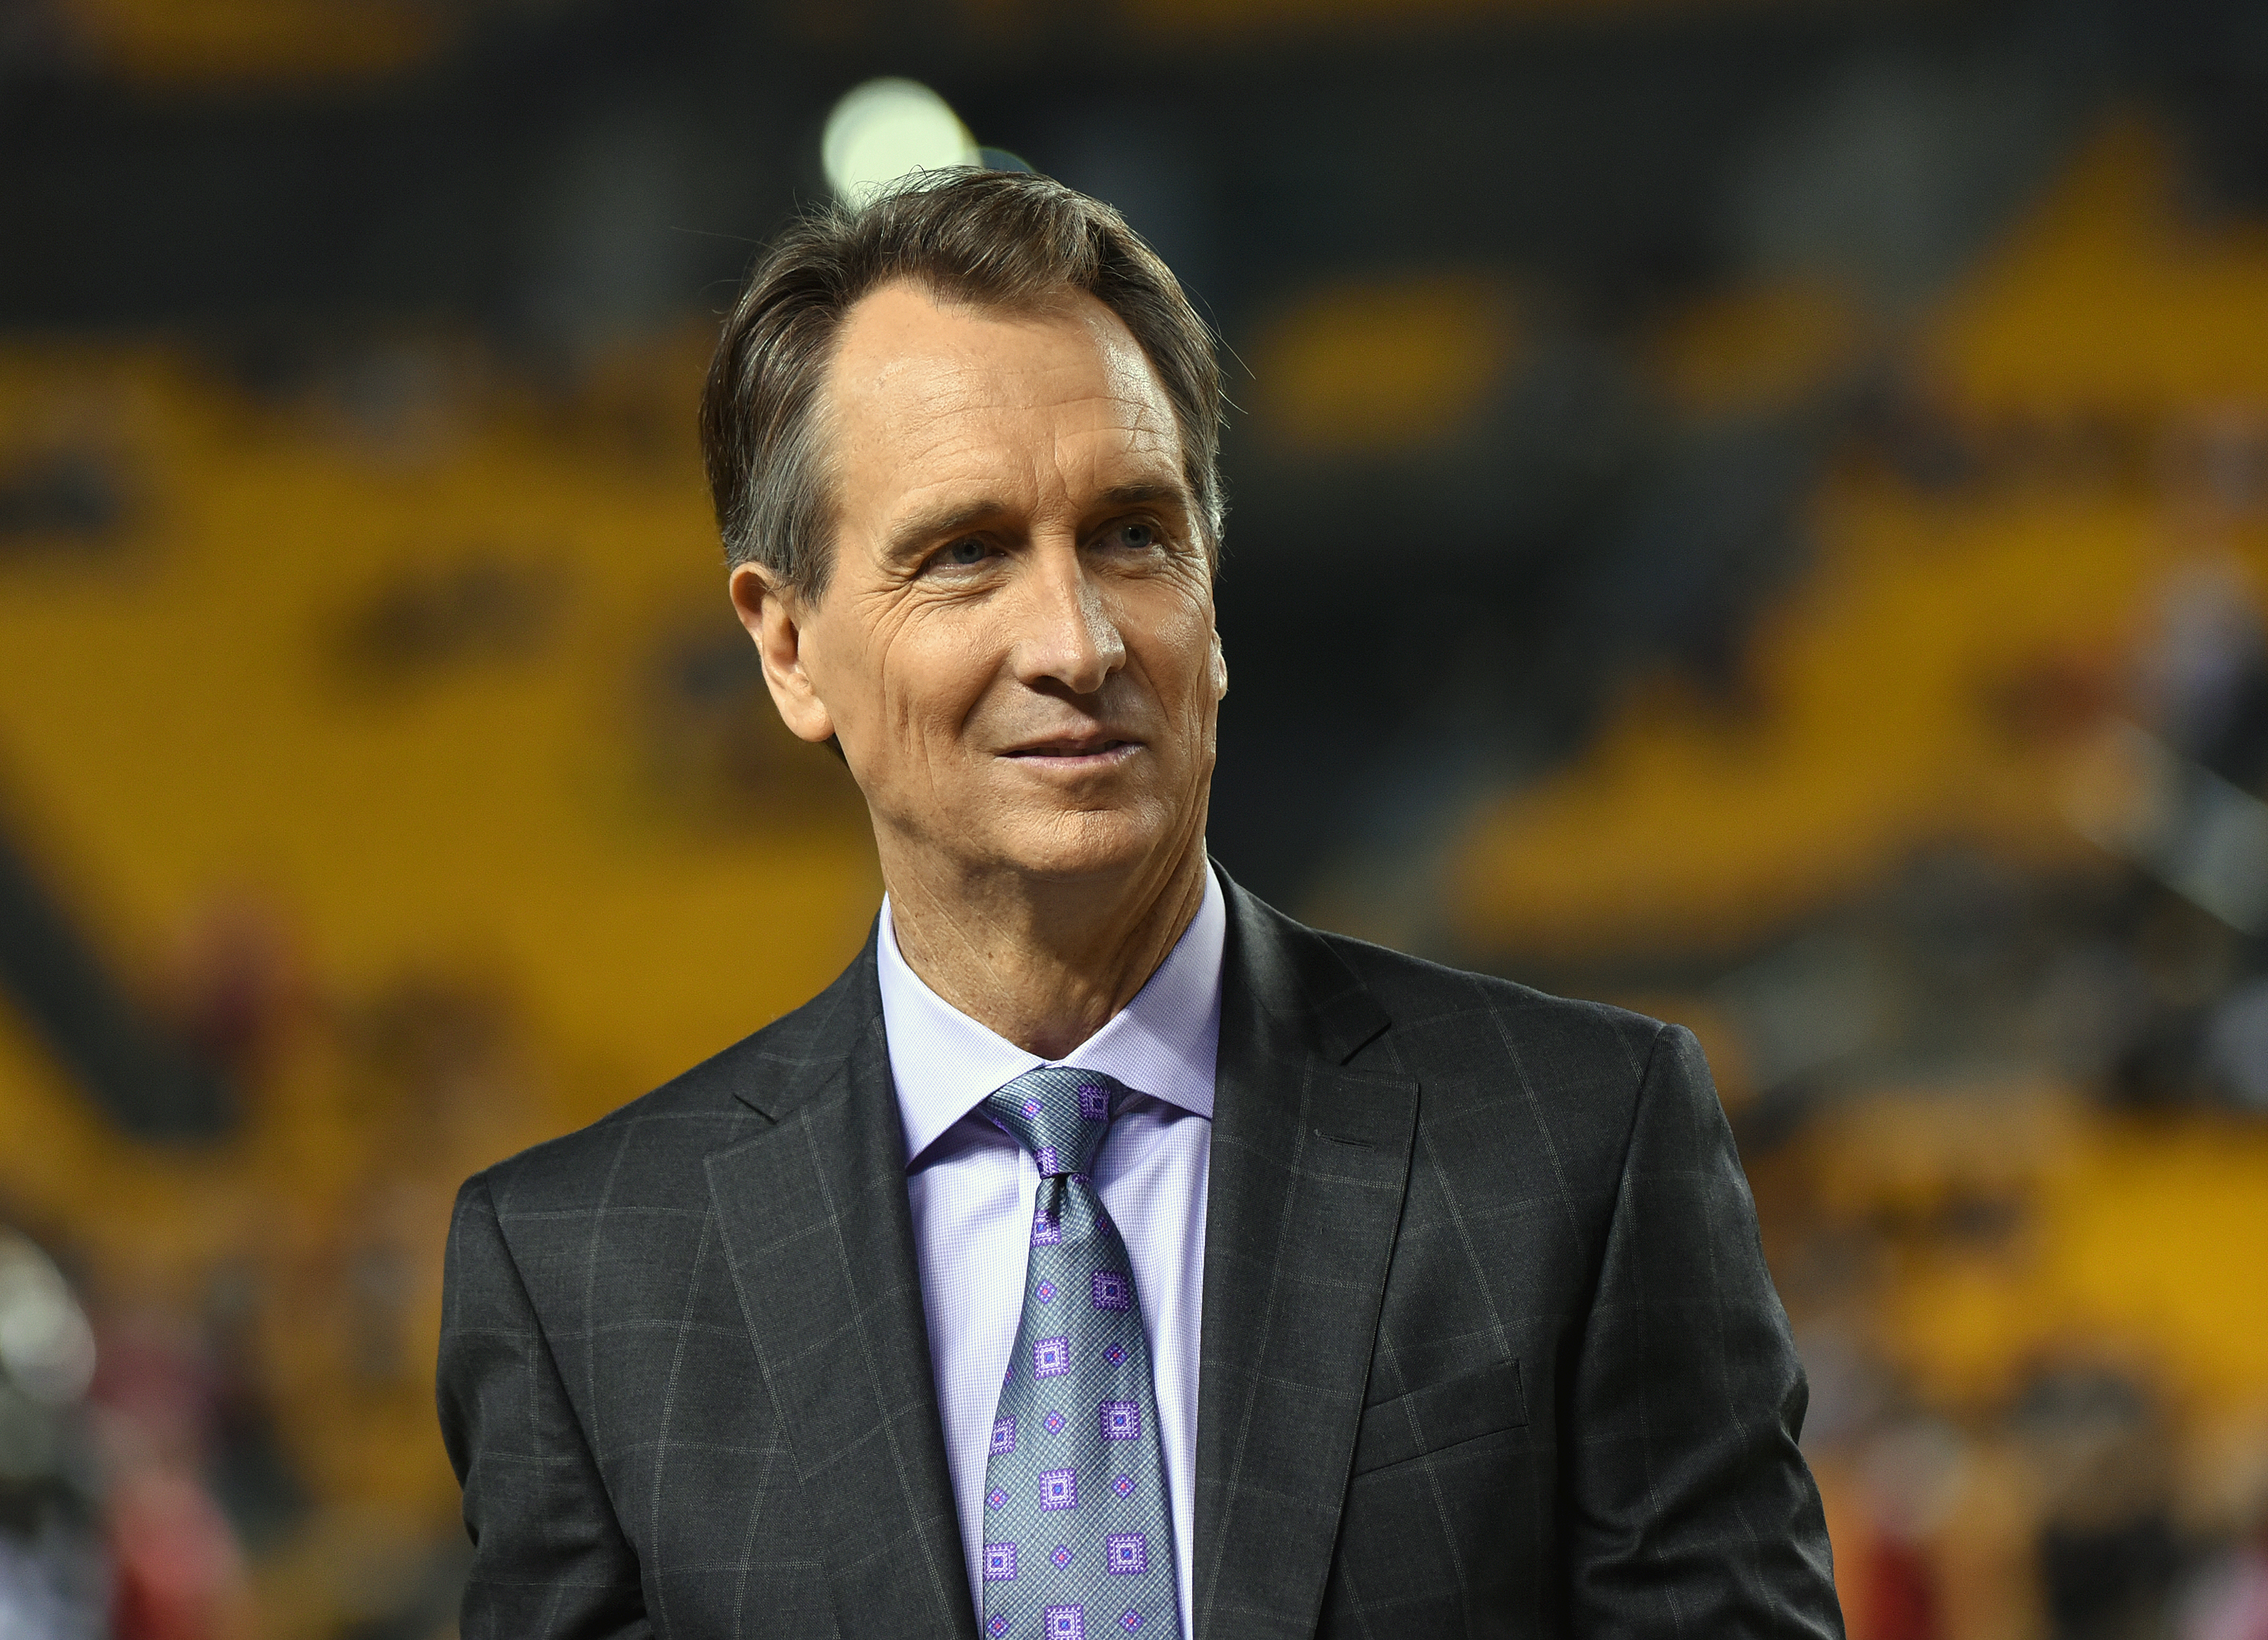 NFL Fans Were Sick And Tired Of Chris Collinsworth Saying 'Moon Ball' During Cardinals-Seahawks 'Sunday Night Football' Game